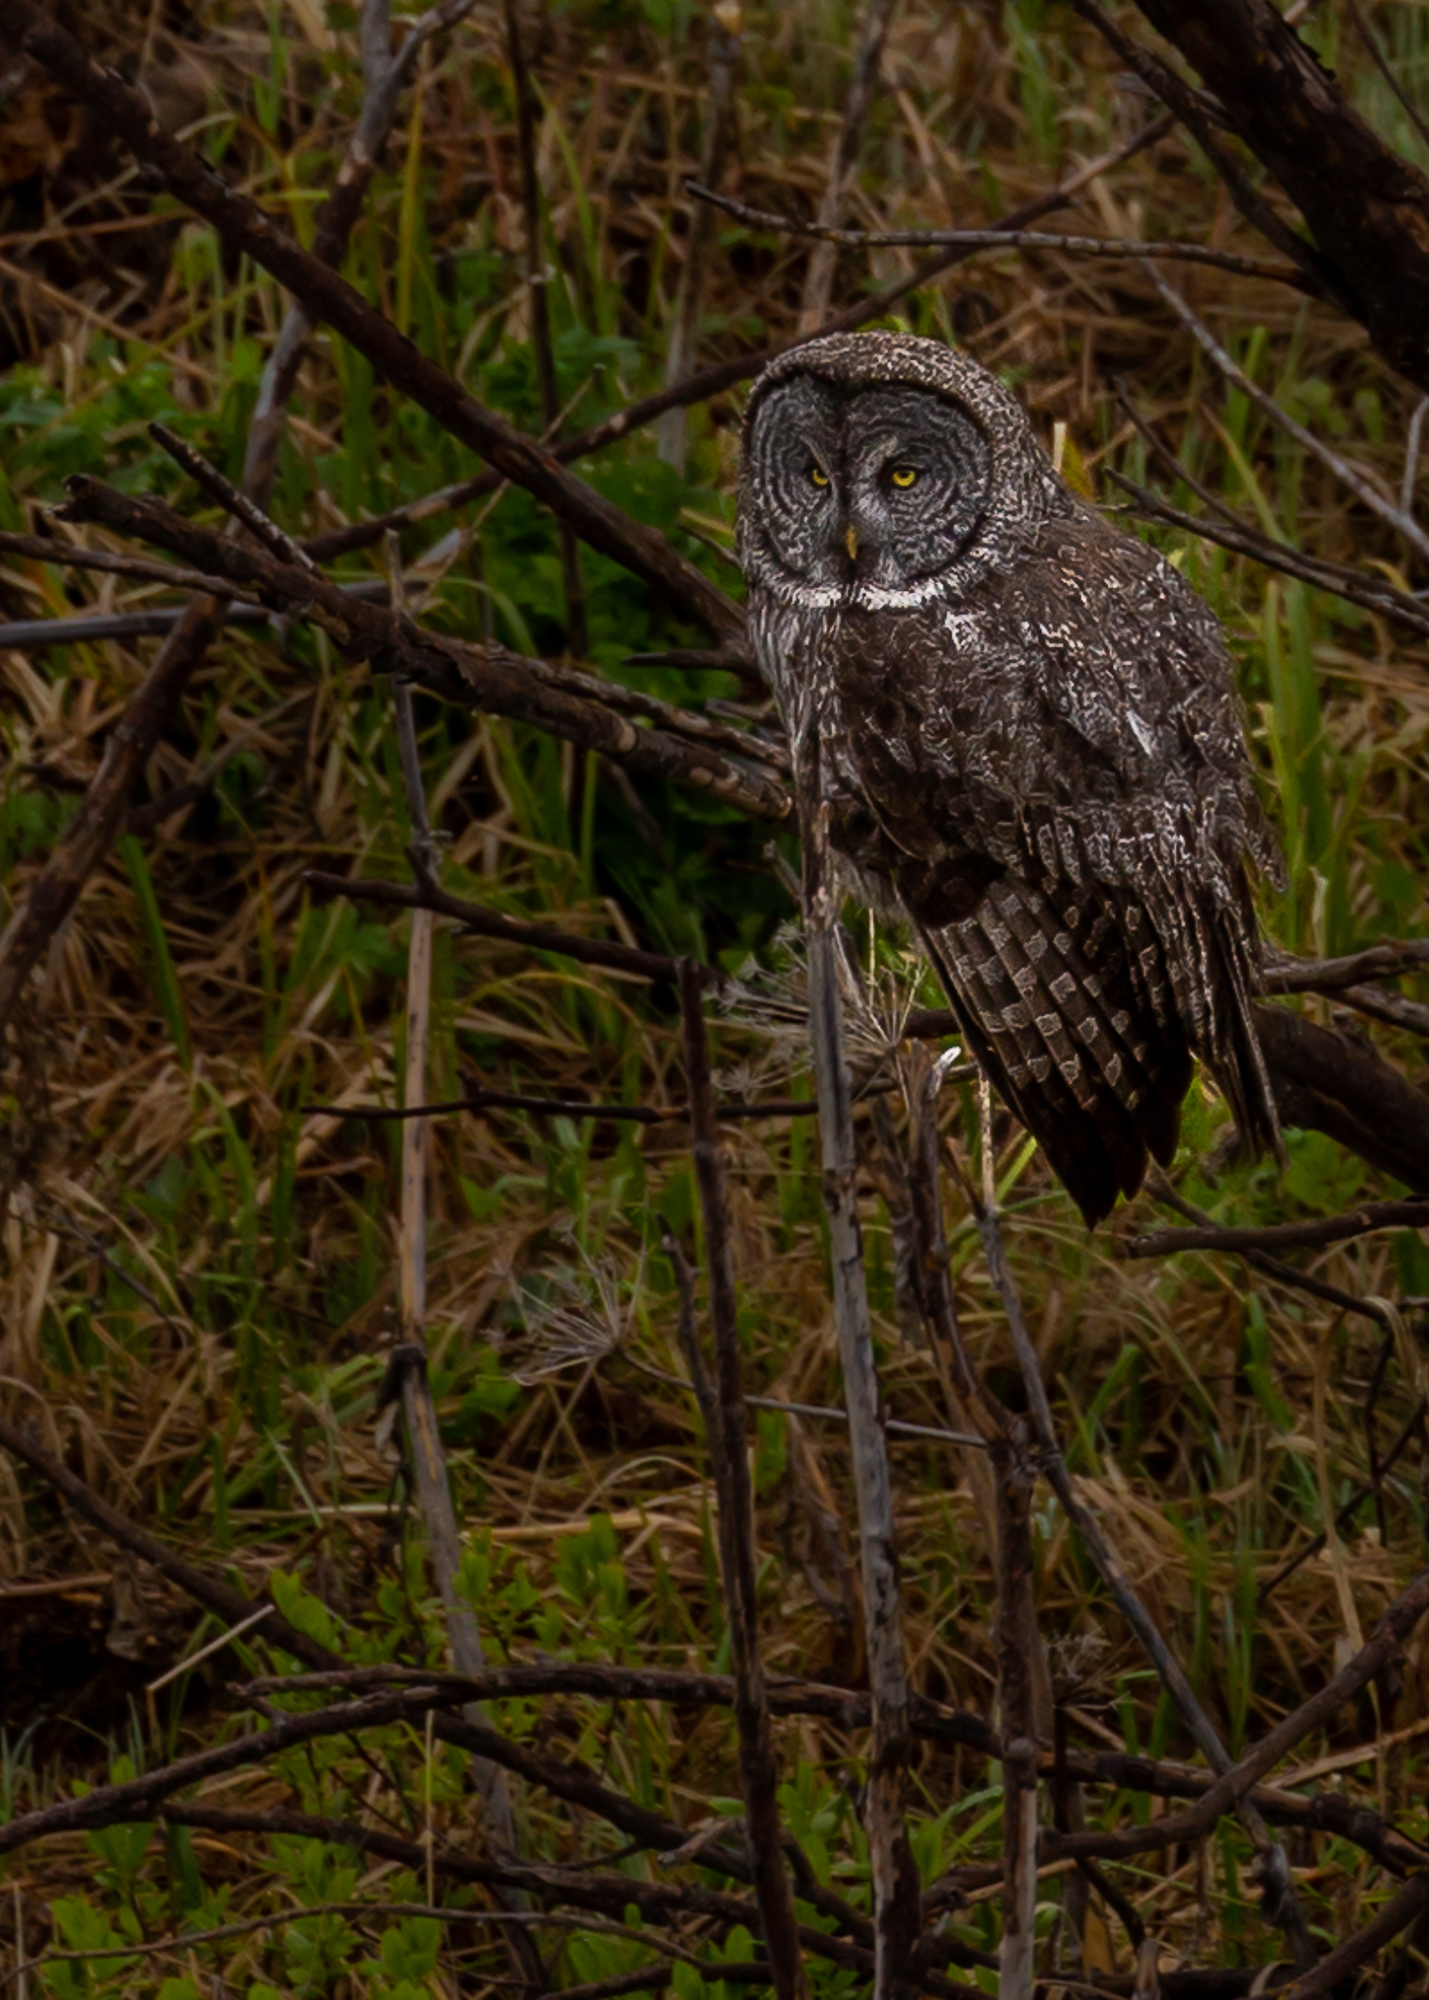 Here is the female Great Grey Owl.